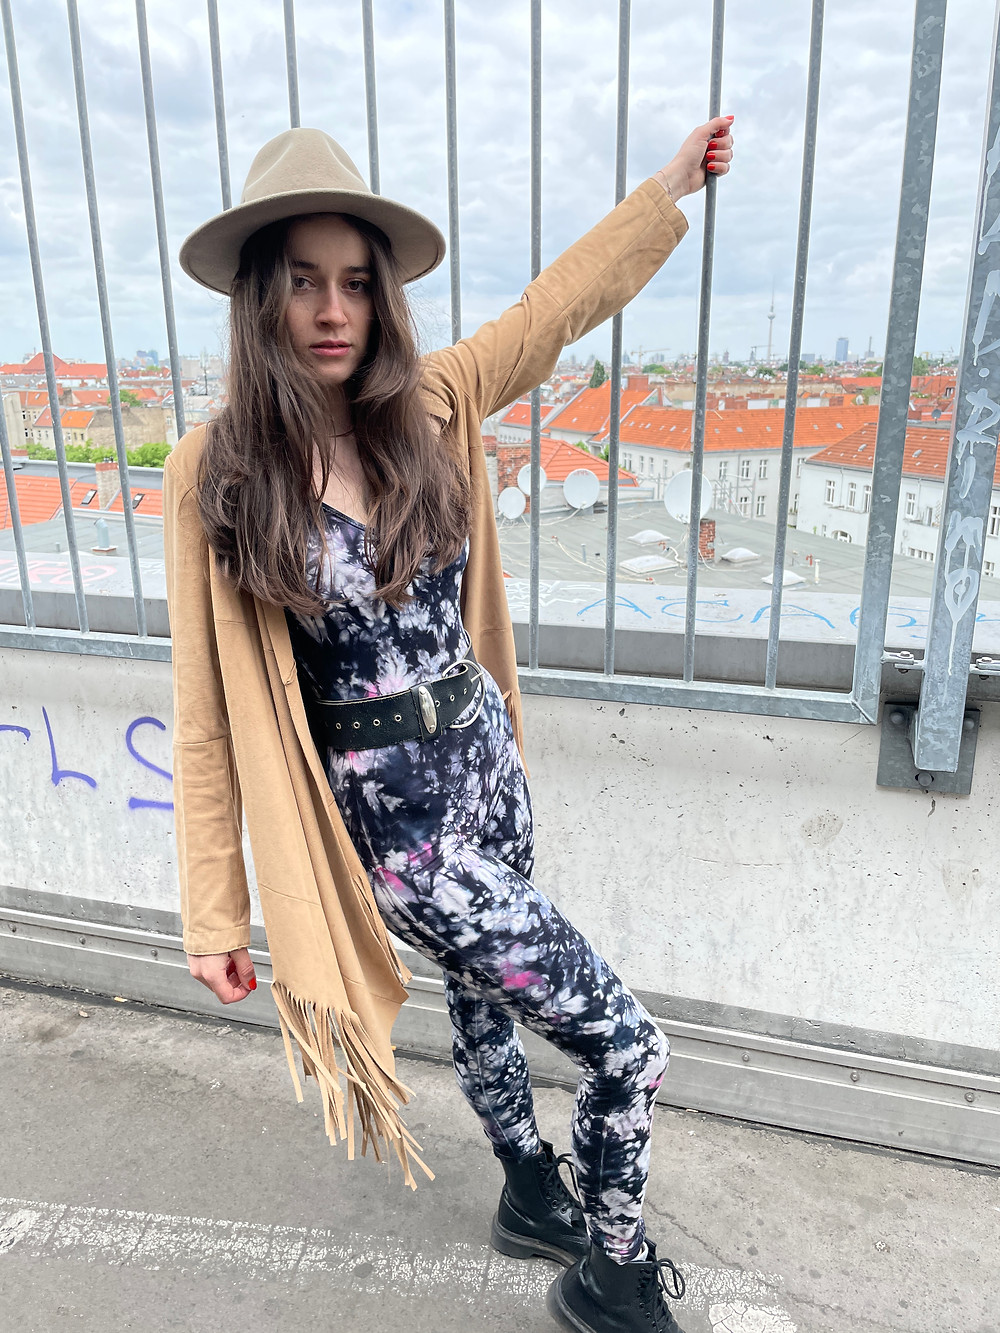 Tinalicious Festival Outfit - Tie Dye Catsuit